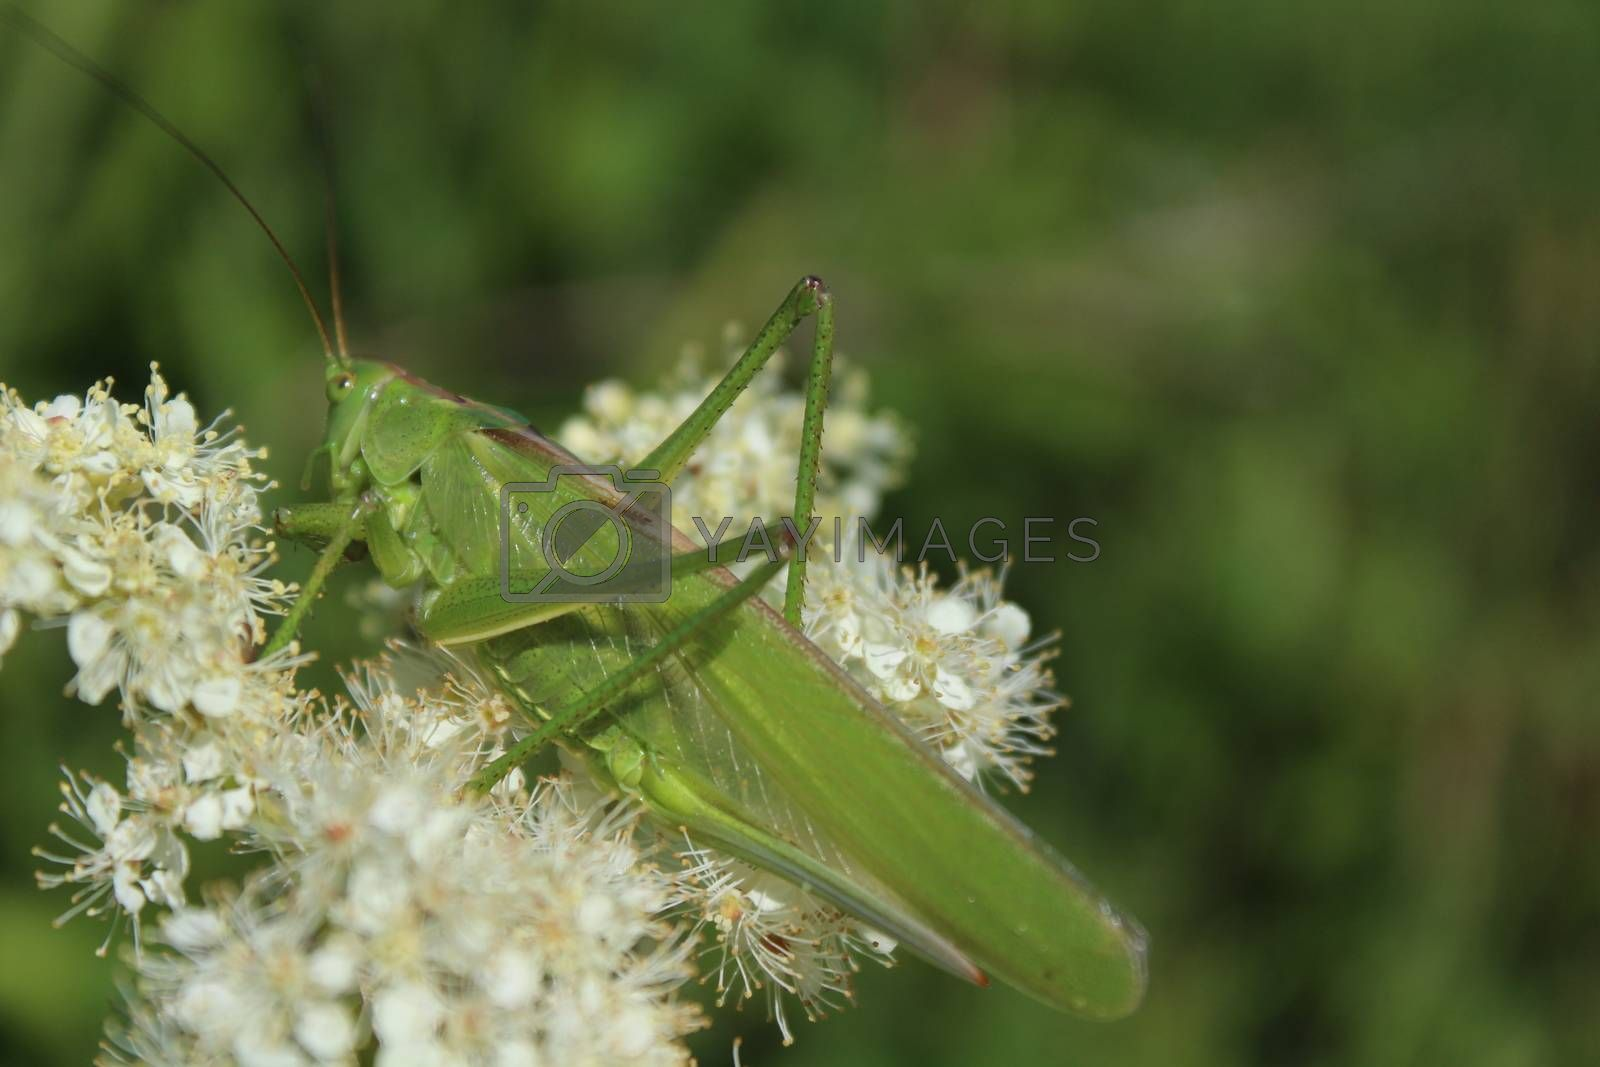 Royalty free image of bush cricket on a blossoming meadow sweet by martina_unbehauen